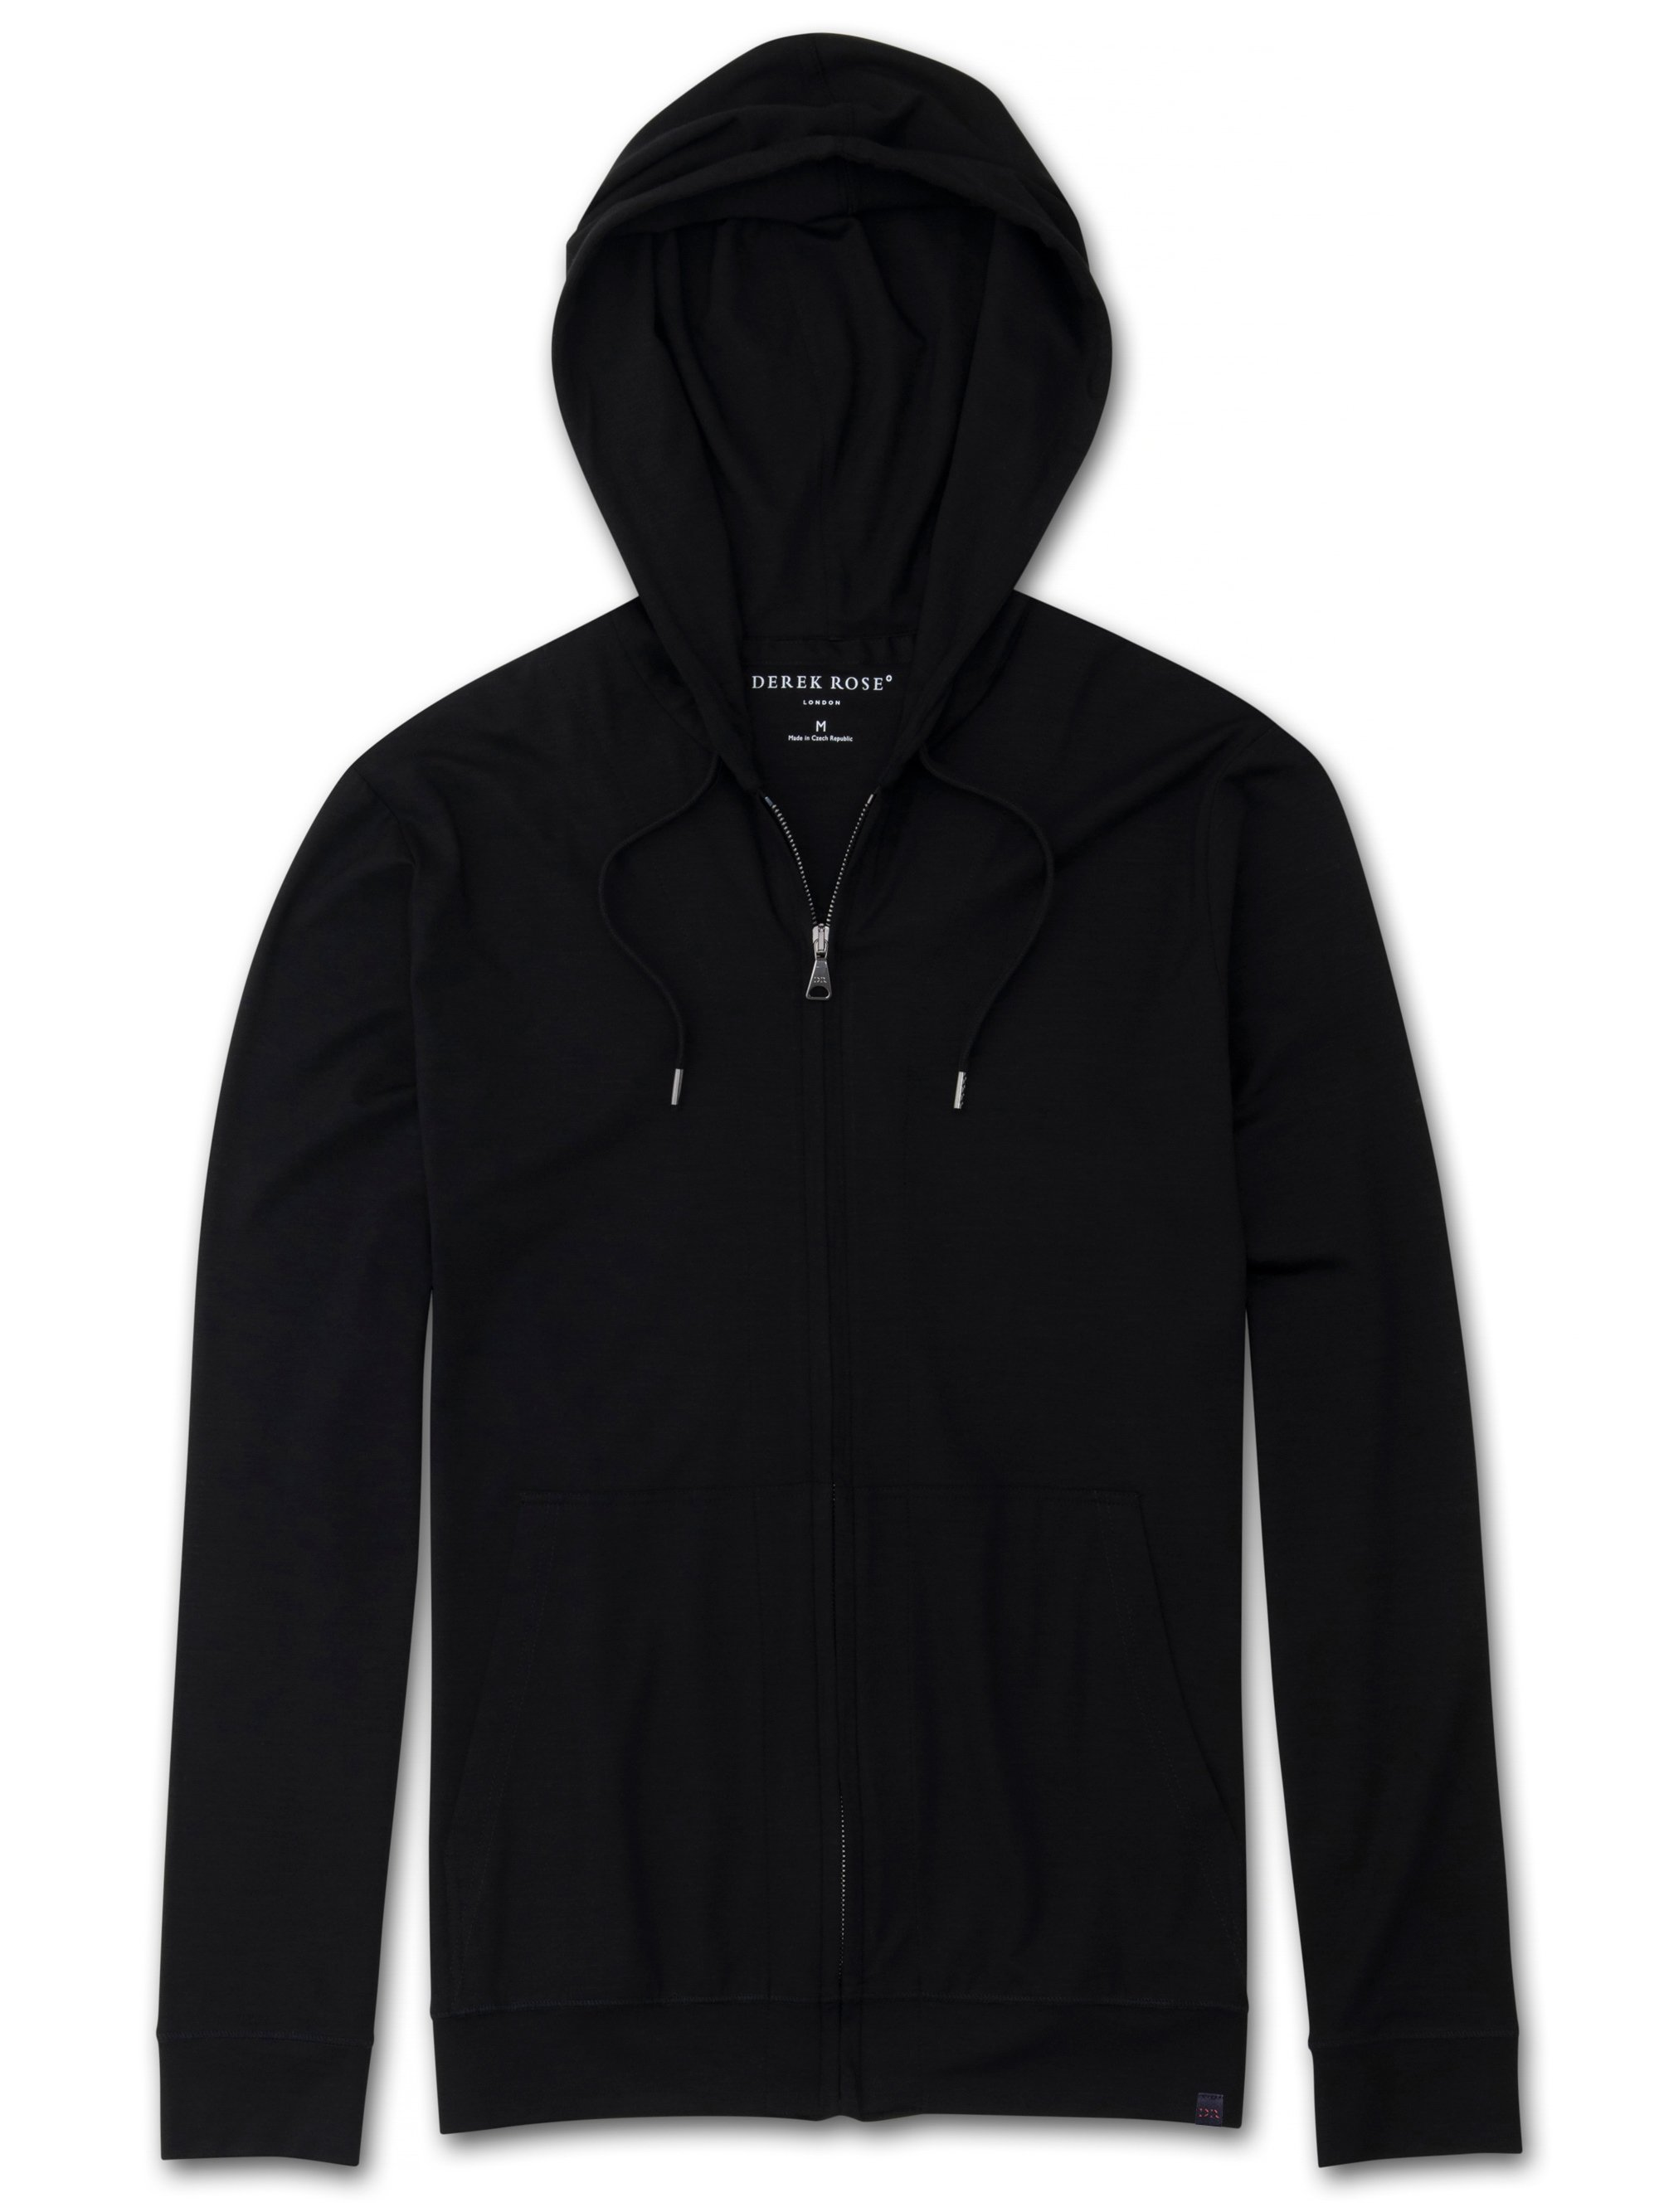 Men's Jersey Hoodie Basel Micro Modal Stretch Black